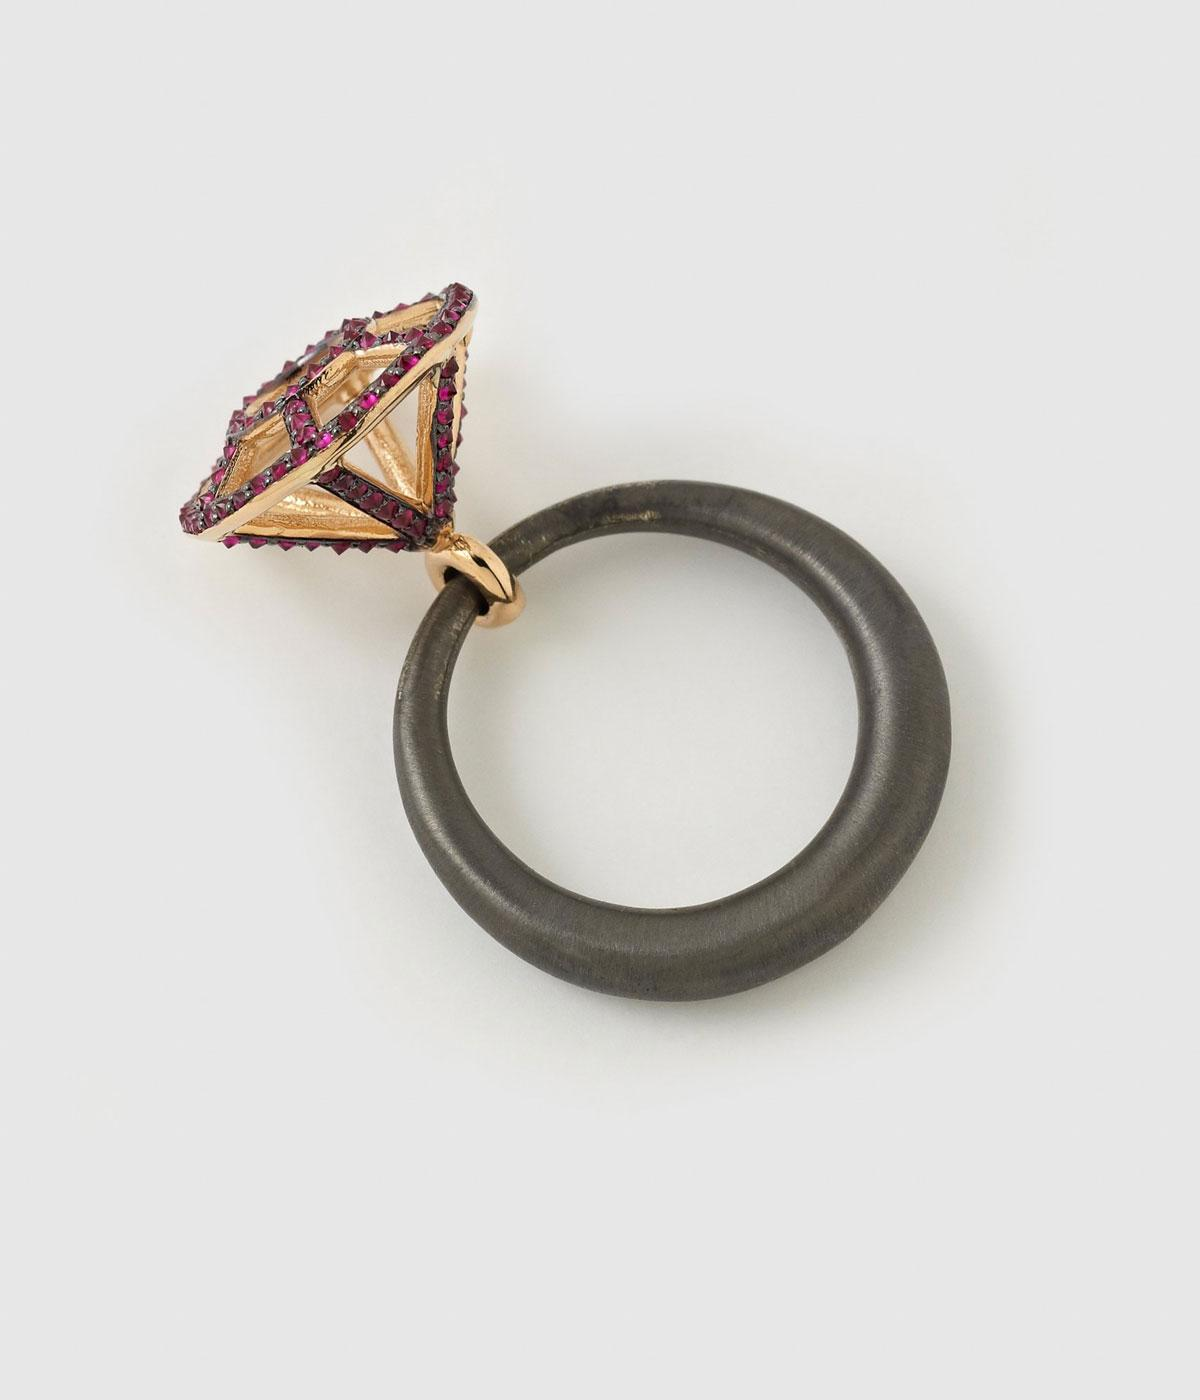 A cage of rubies on a black ring